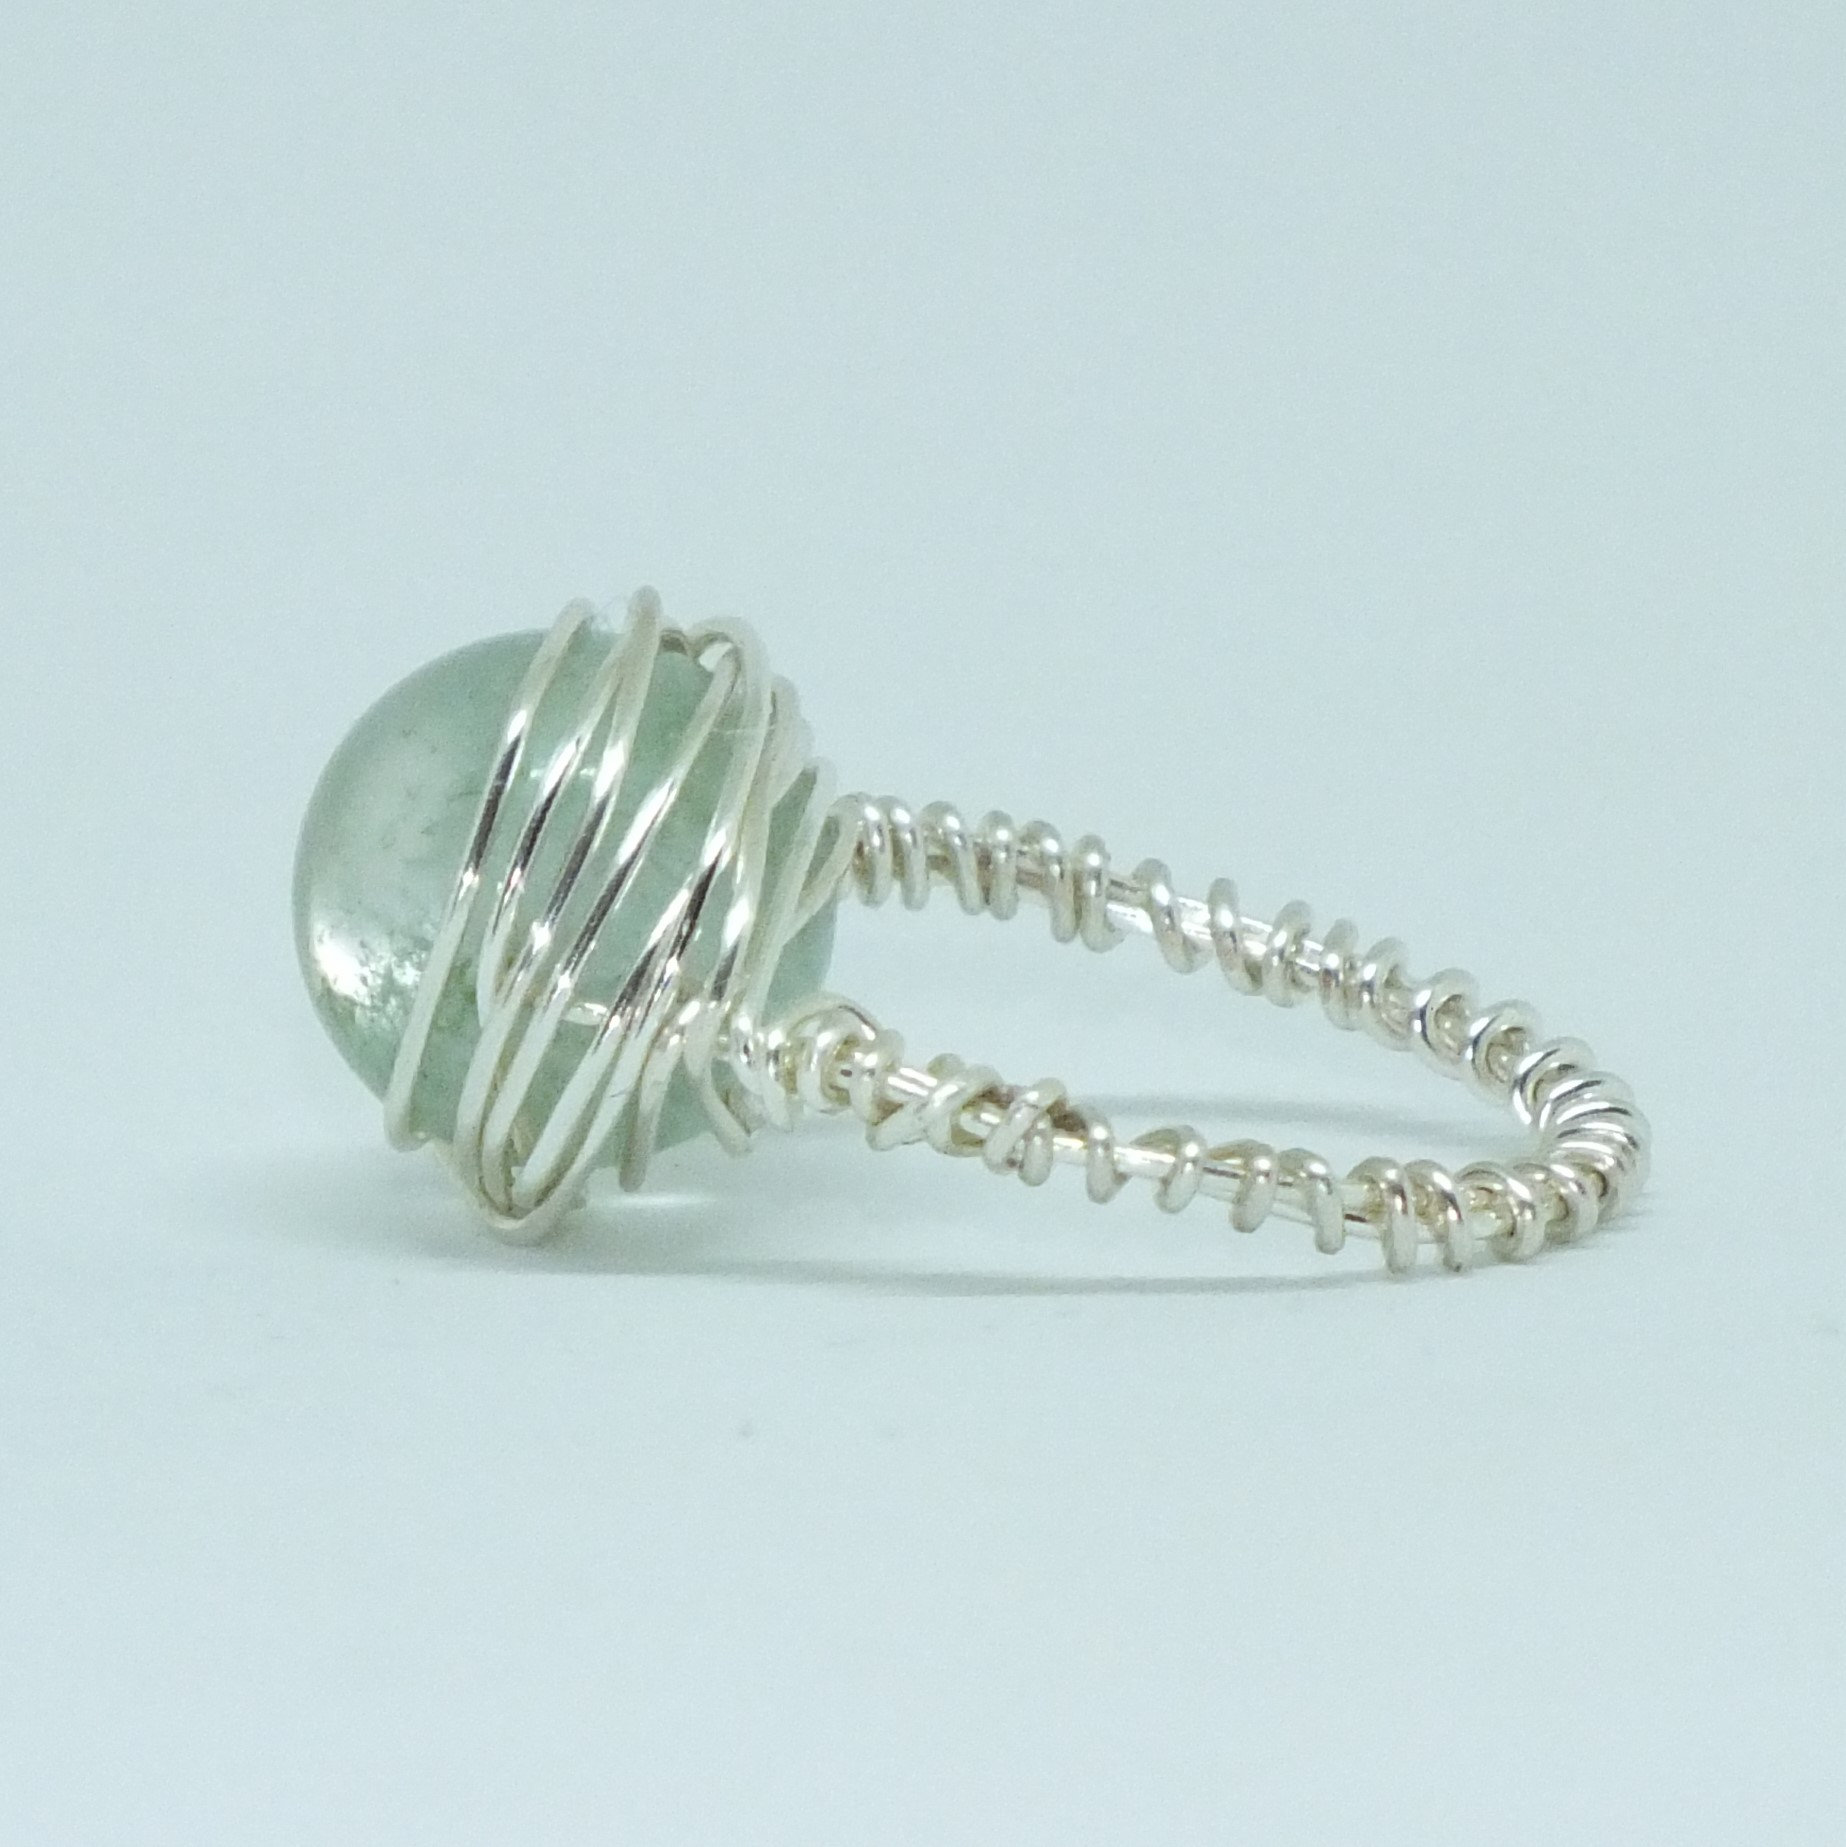 Silver Plated Wire Wrapped Ring With Green Moss Quartz Focal Bead ...